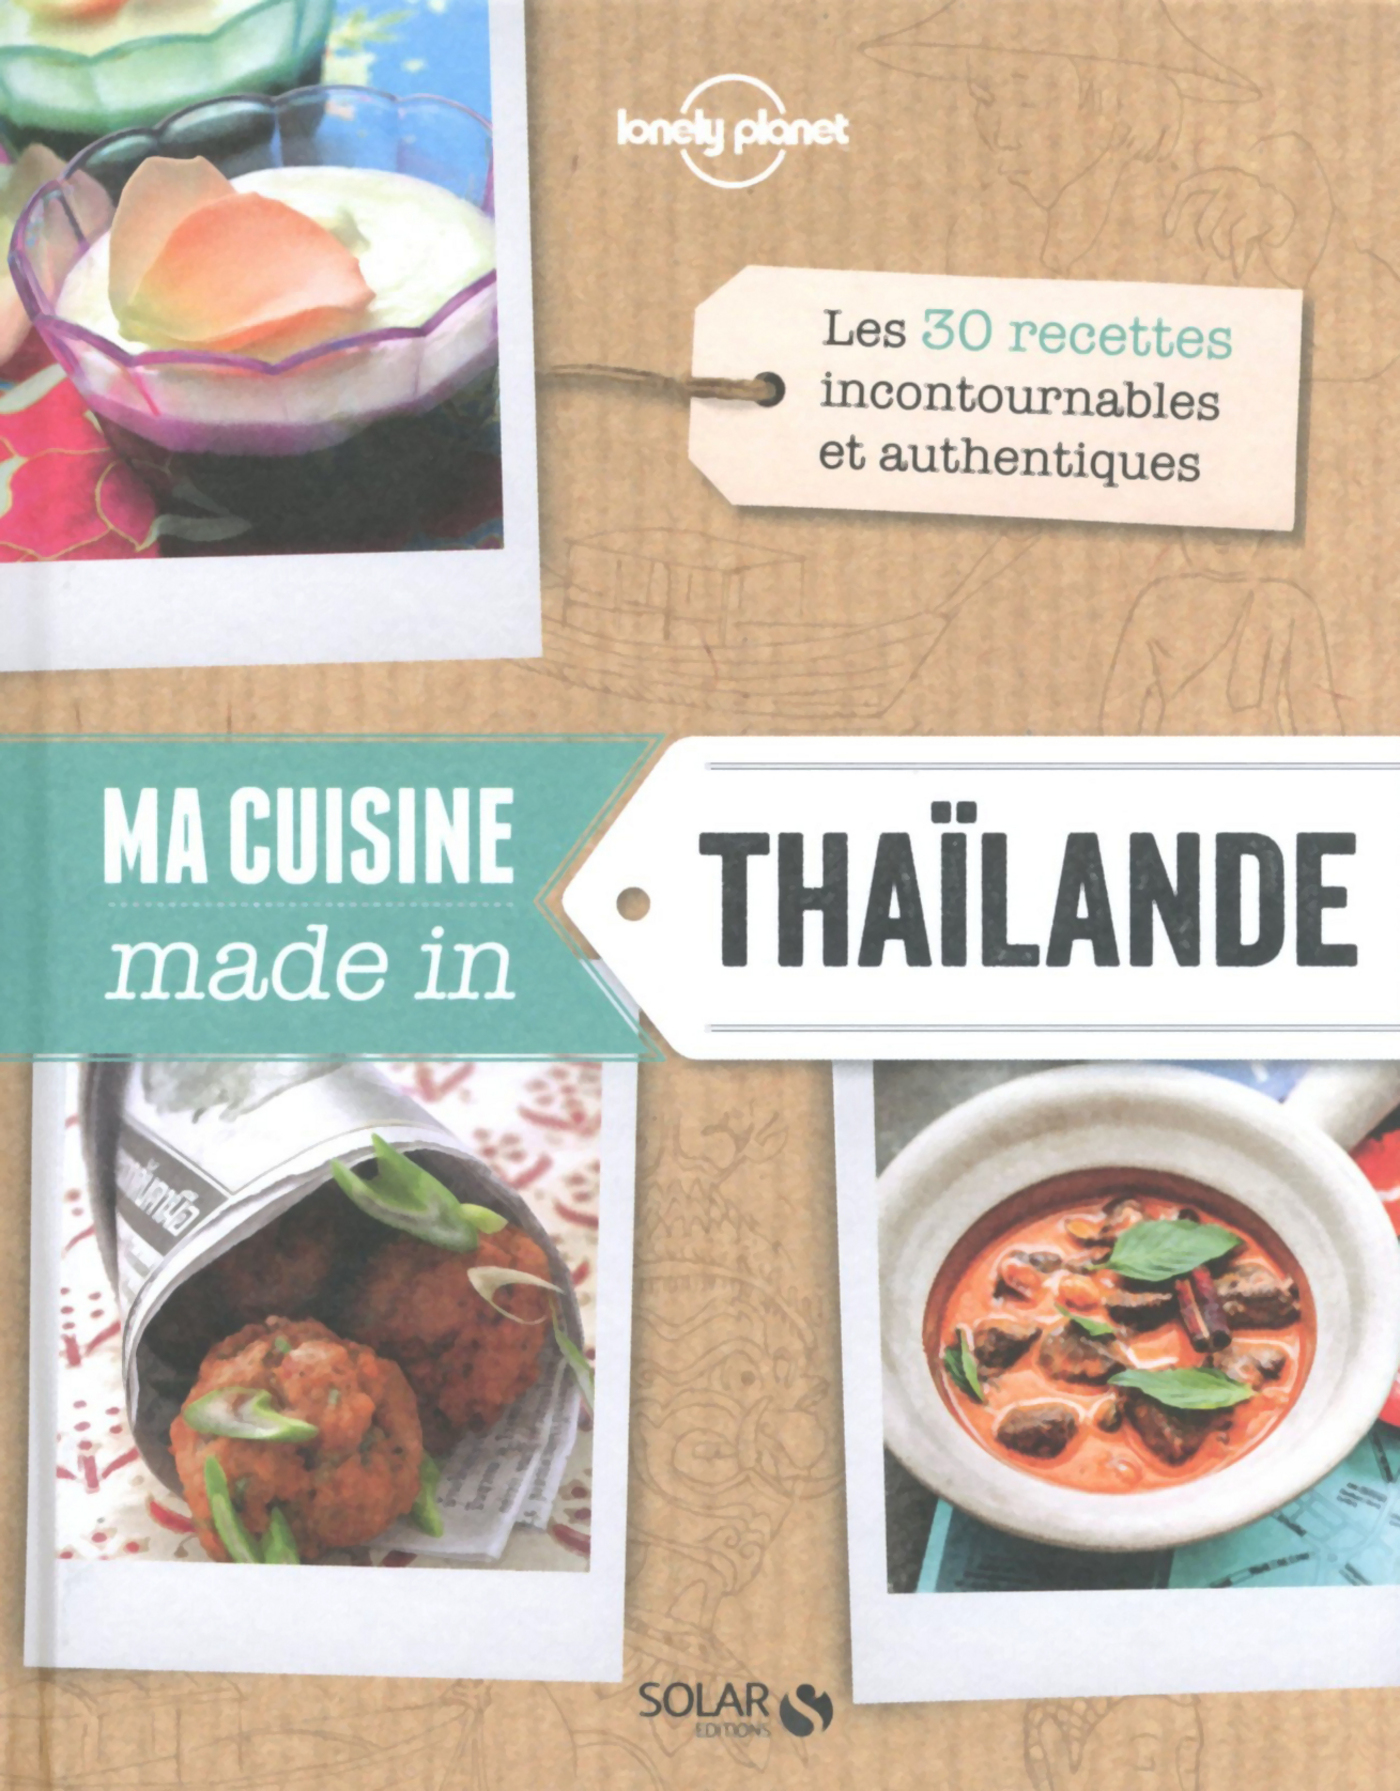 Vignette du livre Ma cuisine made in Thaïlande - Lonely Planet Solar